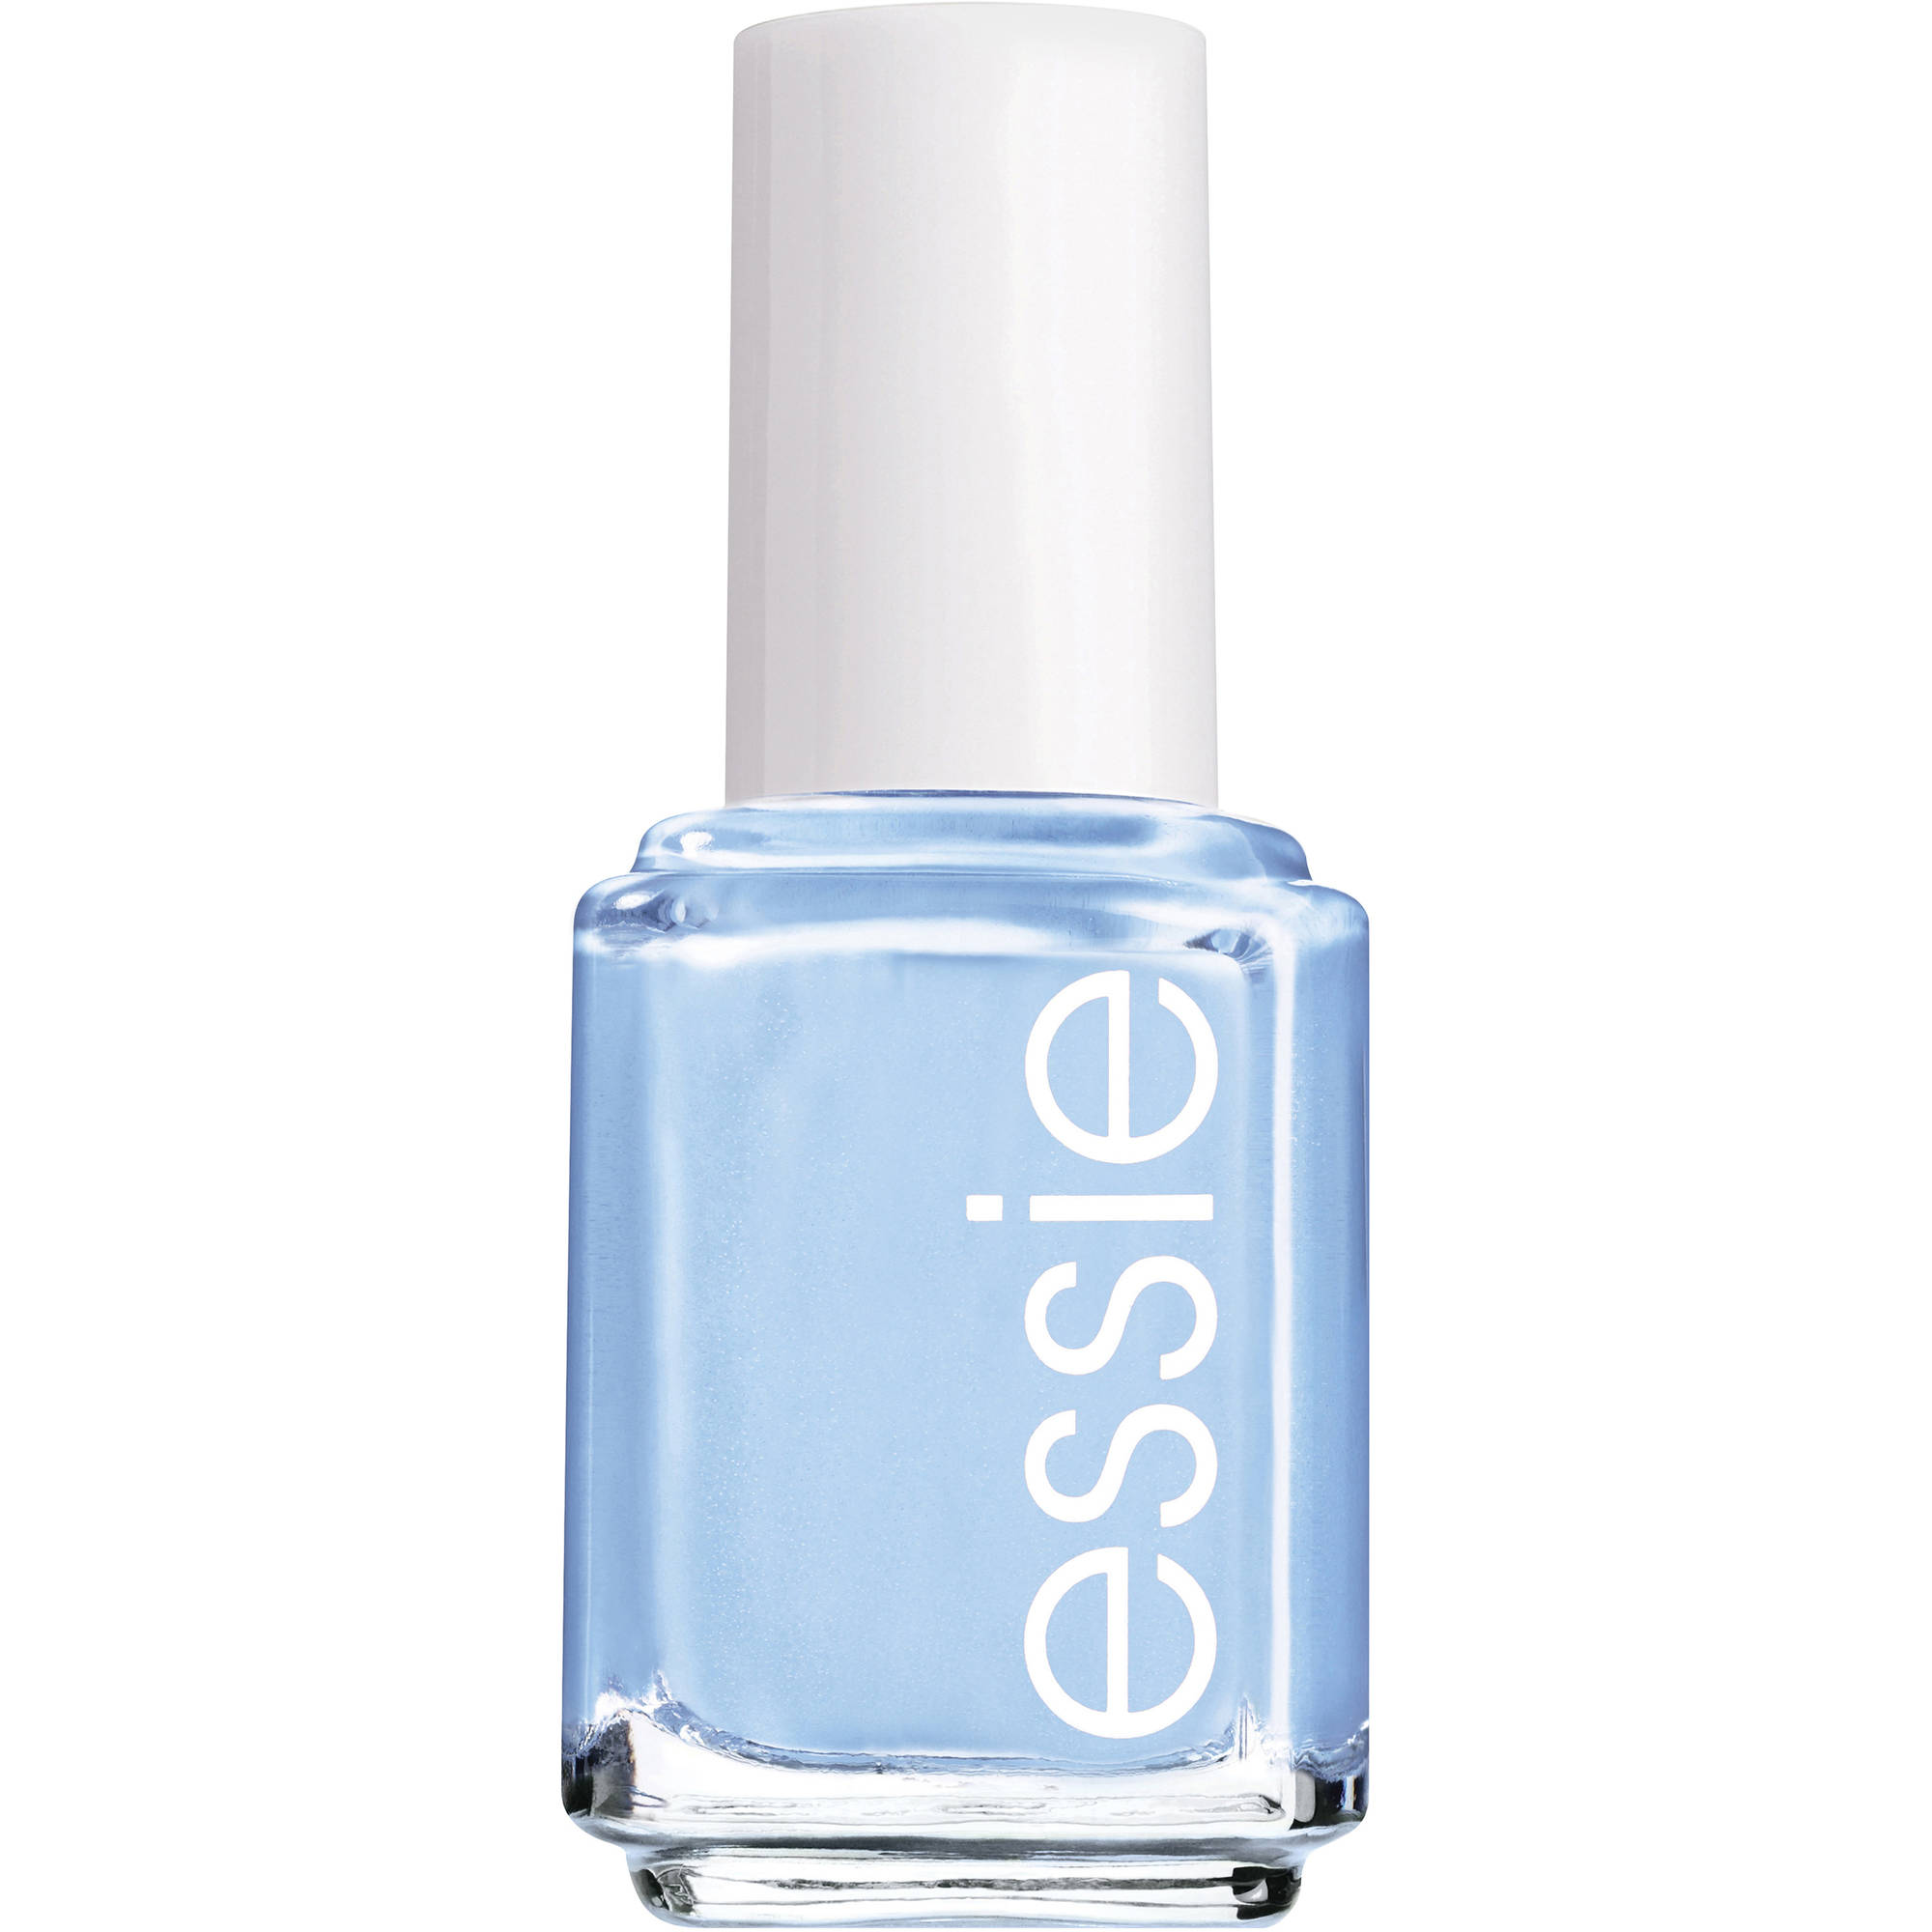 Essie Nail Polish, (Blues) Bikini So Teeny, 0.46 fl oz - Walmart.com